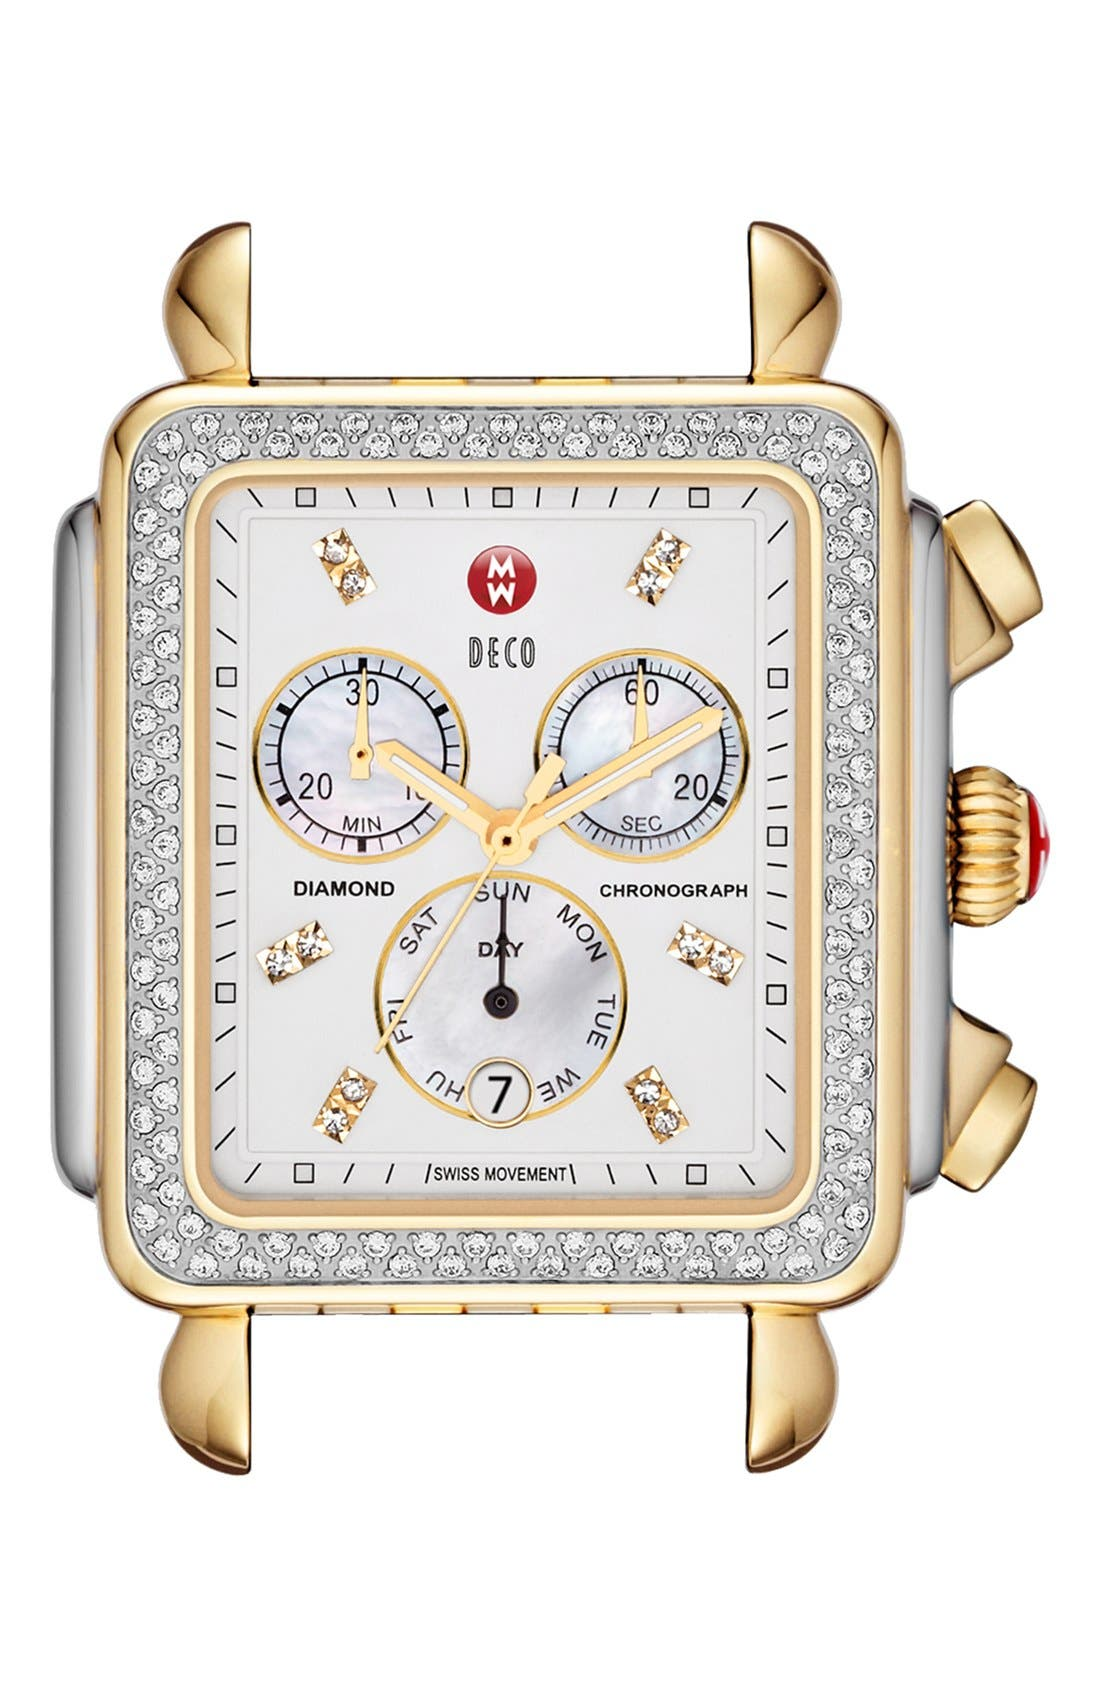 Alternate Image 1 Selected - MICHELE 'Deco XL Diamond' Diamond Dial Two-Tone Watch Case, 37mm x 38mm